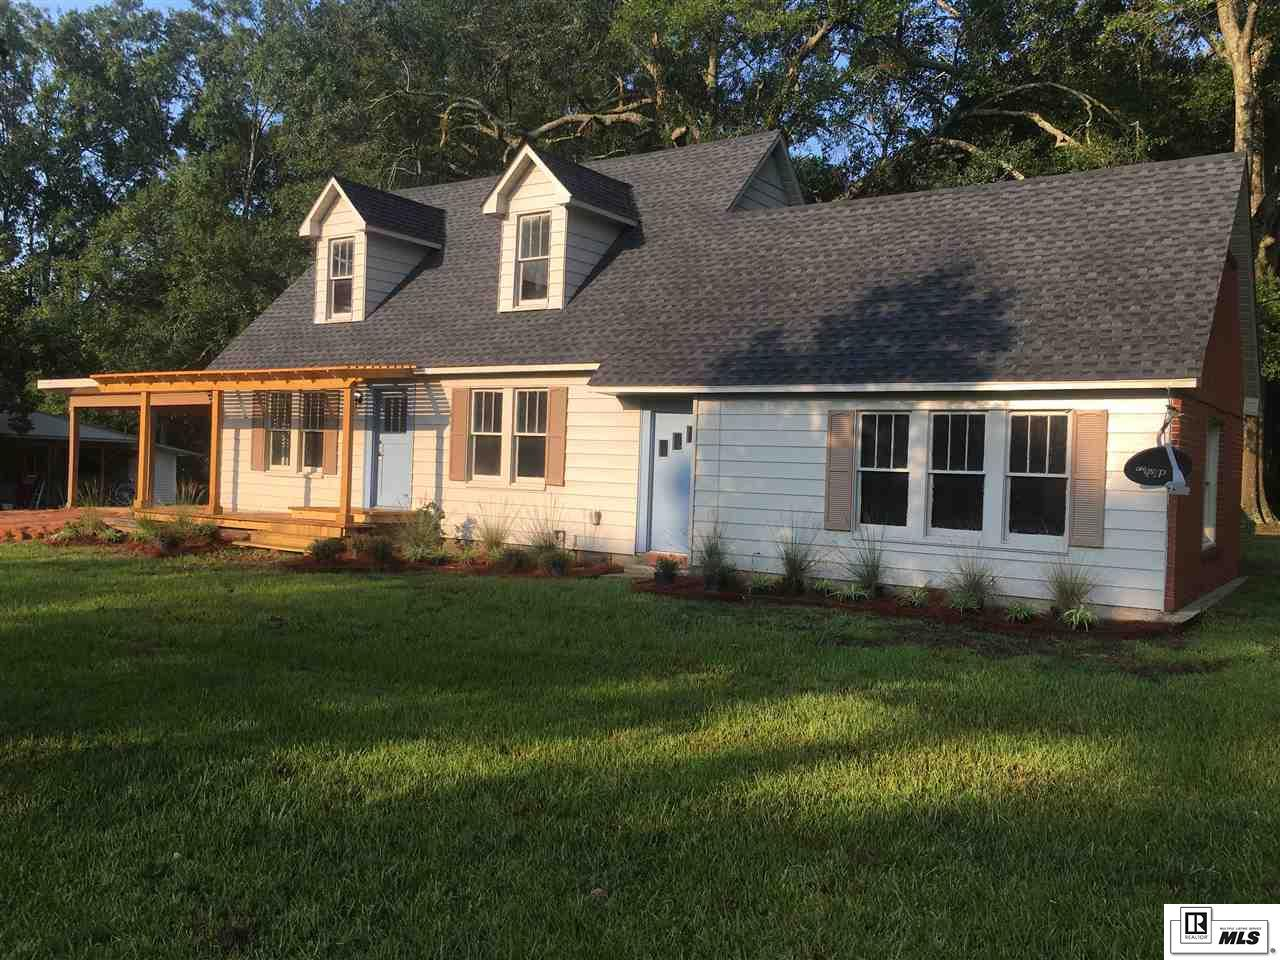 Sold-  2486 Hwy 3121